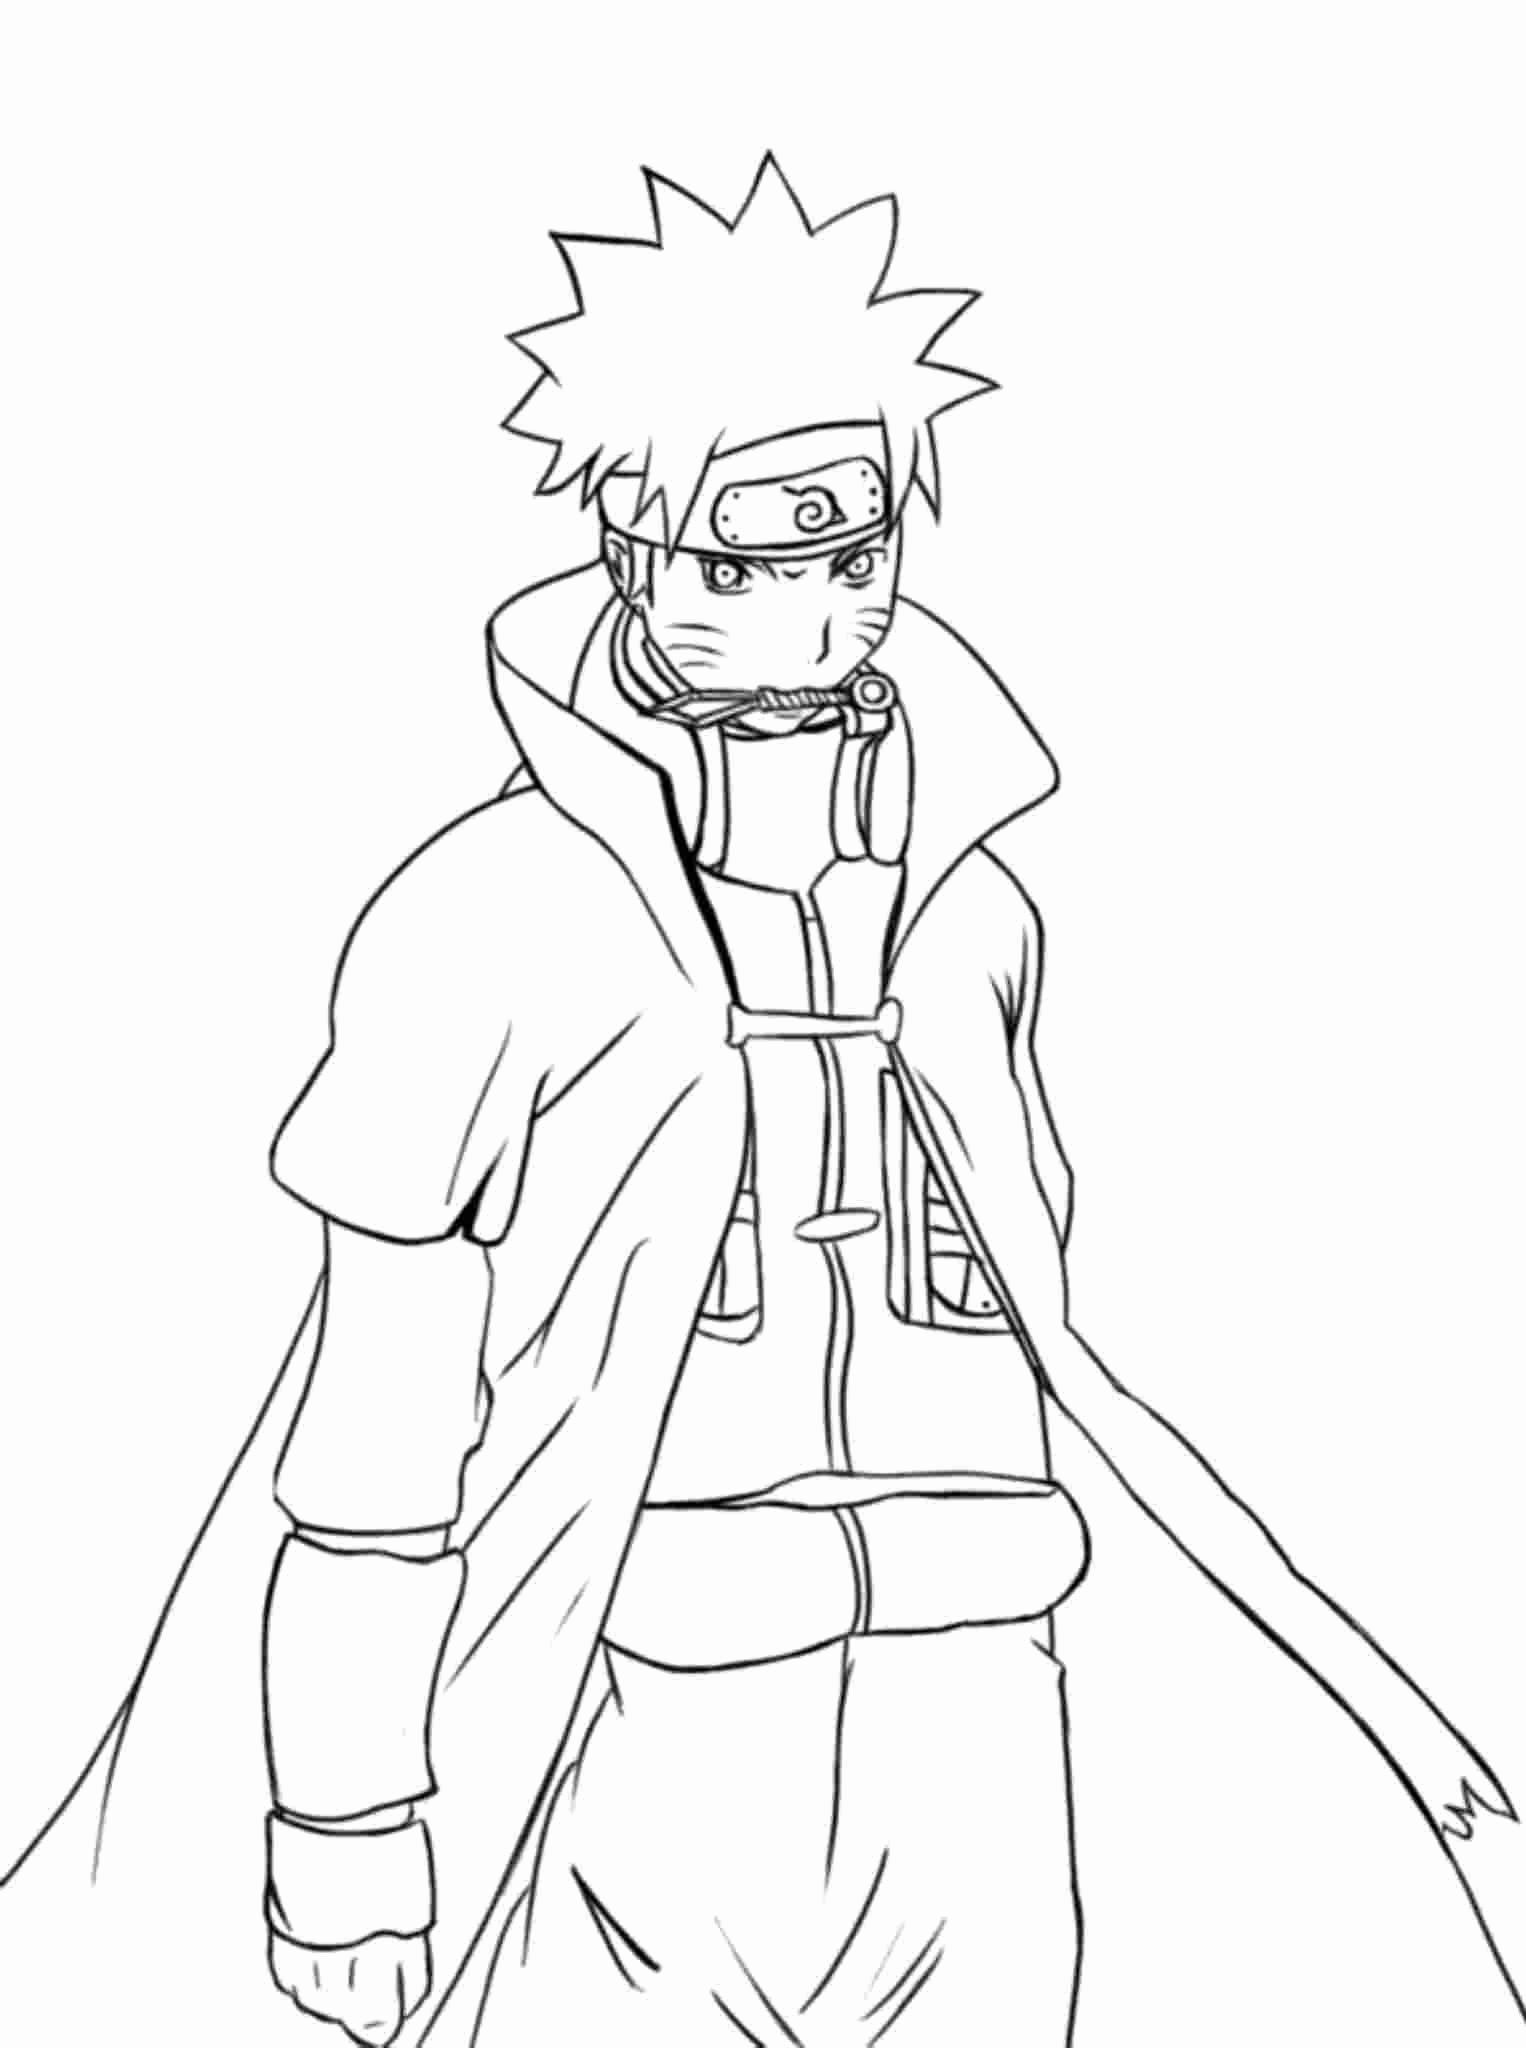 Naruto Shippuden Anime Coloring Pages Printable Popular Coloring Naruto Shippuden In 2020 Cartoon Coloring Pages Cute Coloring Pages Chibi Coloring Pages